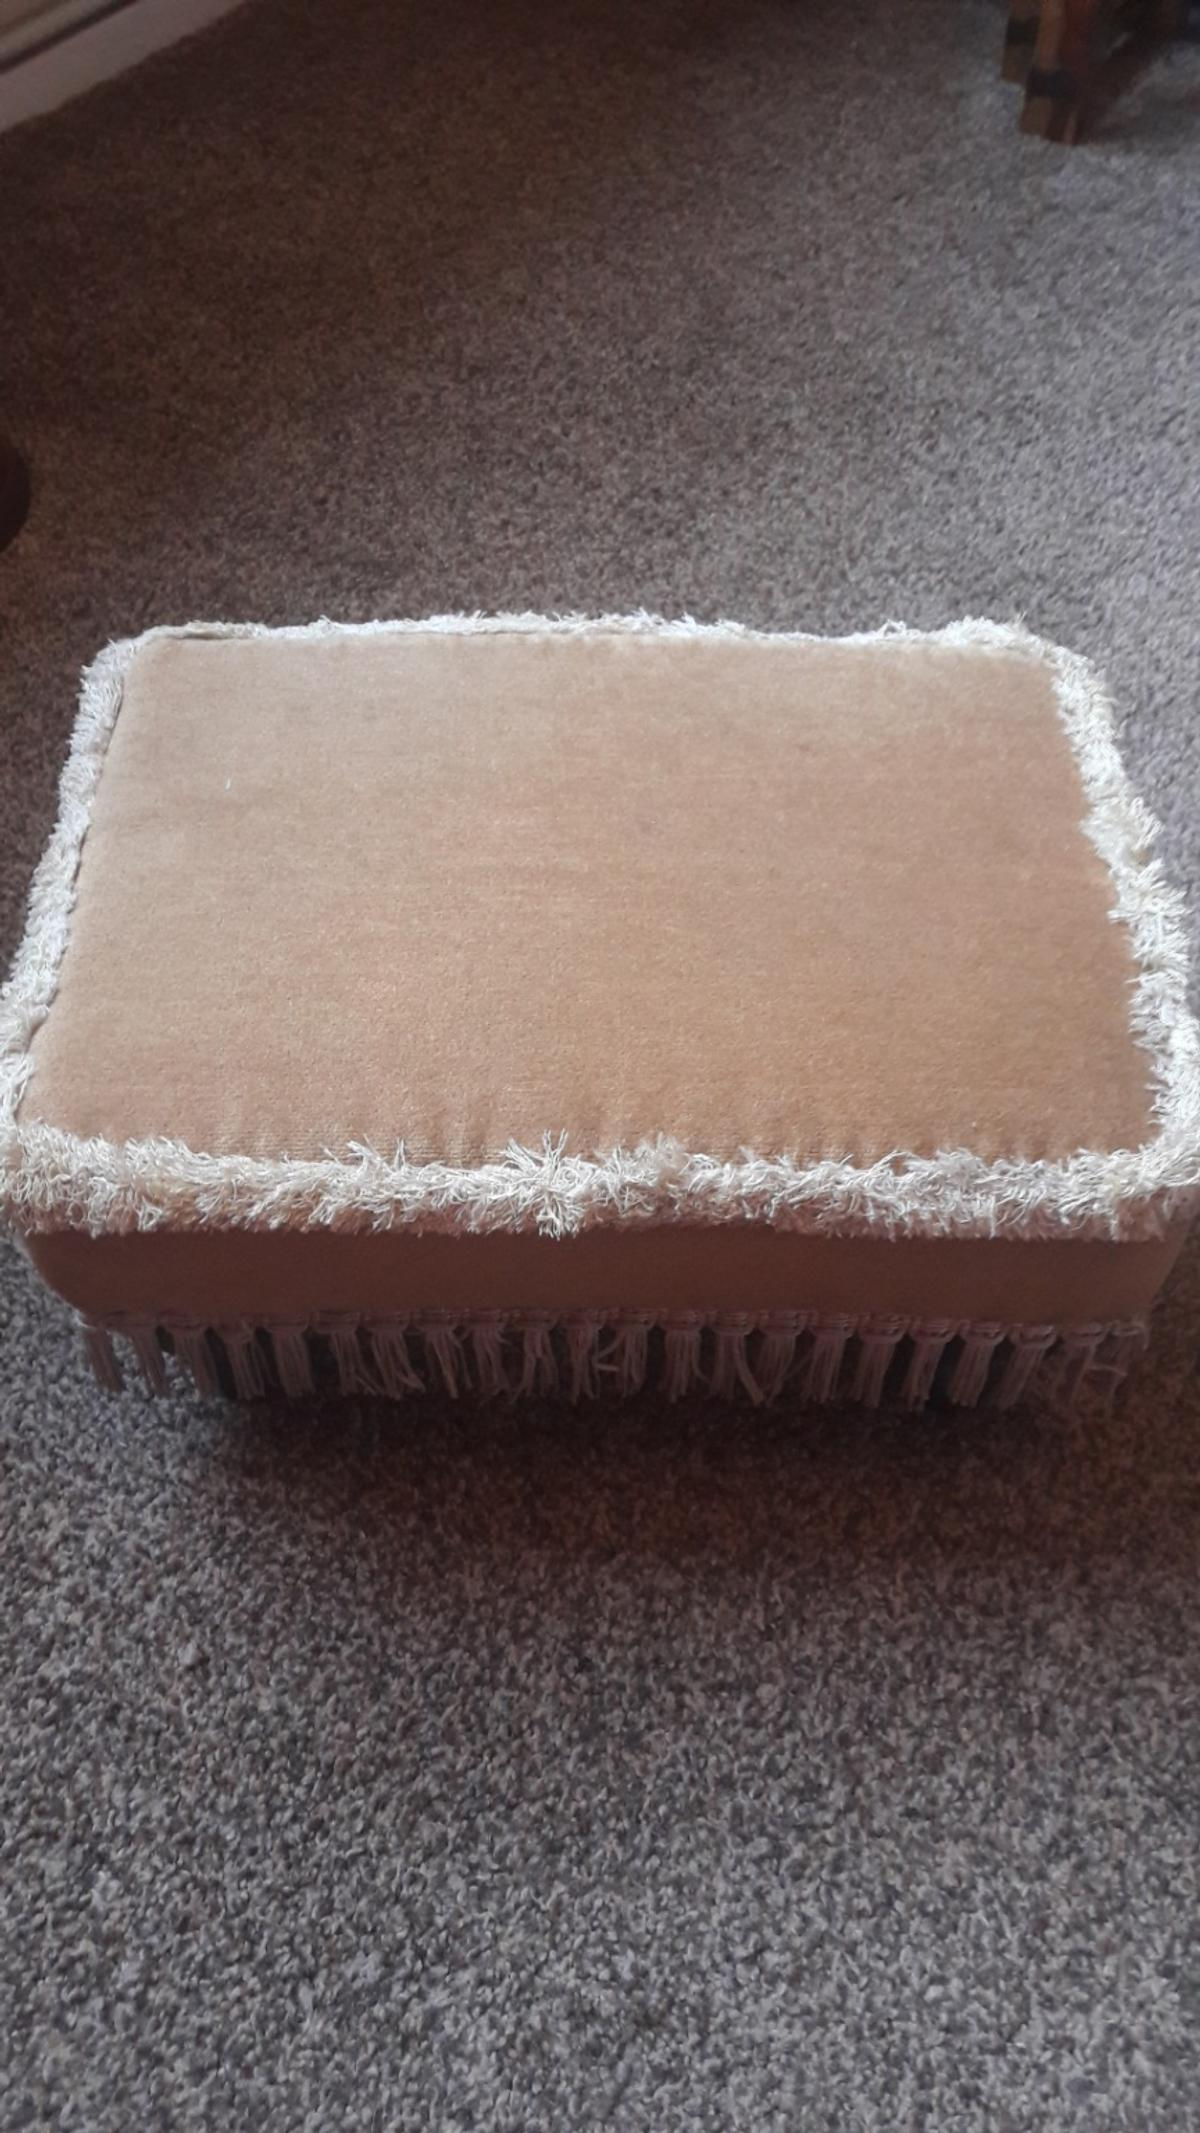 Draylon and fringed foot stool with legs. Mustard colour. Has a few small marks which I'm sure could be removed. Overall good condition. Collection from Brierley Hill No holding £3